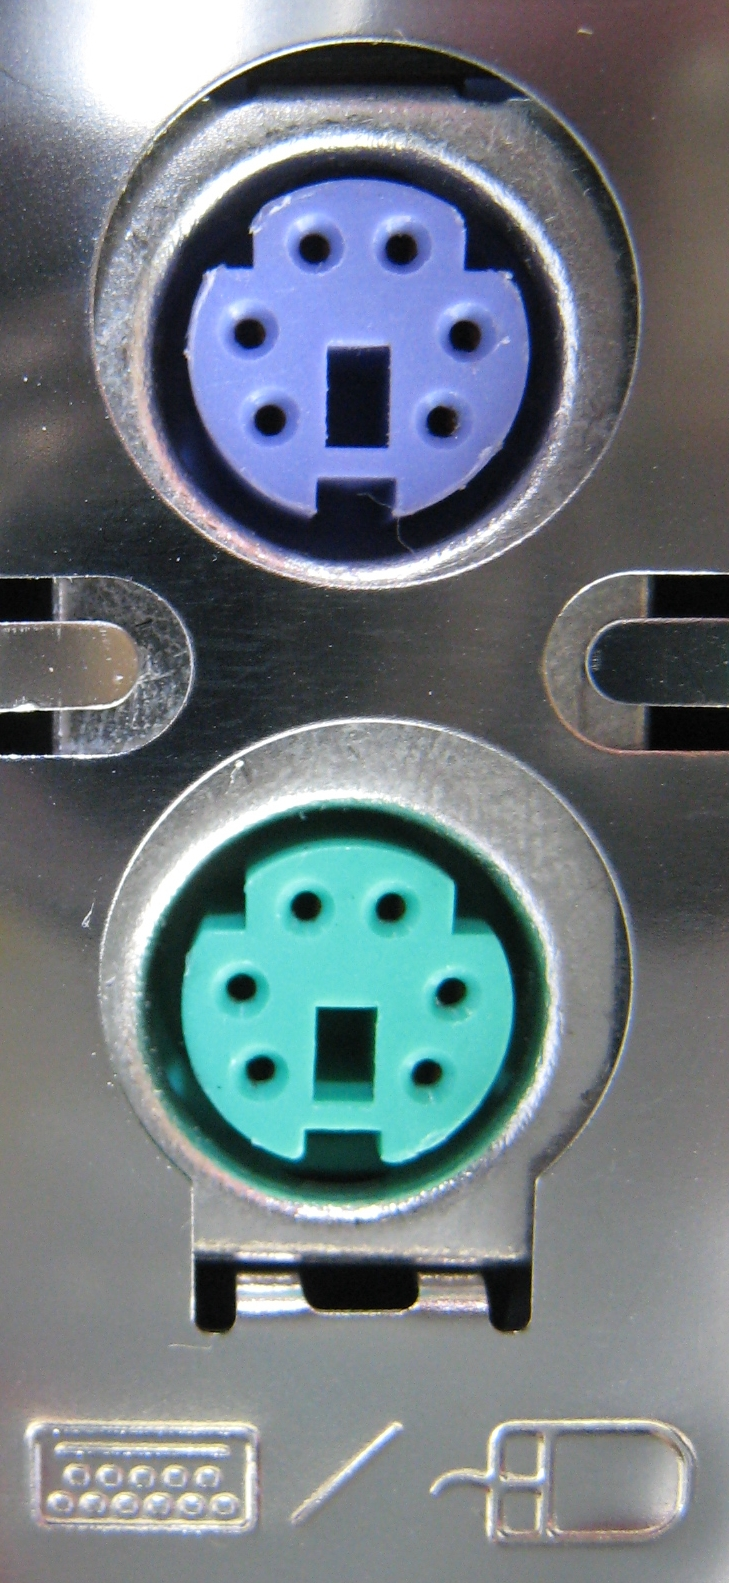 https://upload.wikimedia.org/wikipedia/commons/8/81/Two_PS2_connectors_PNr%C2%B00053.jpg